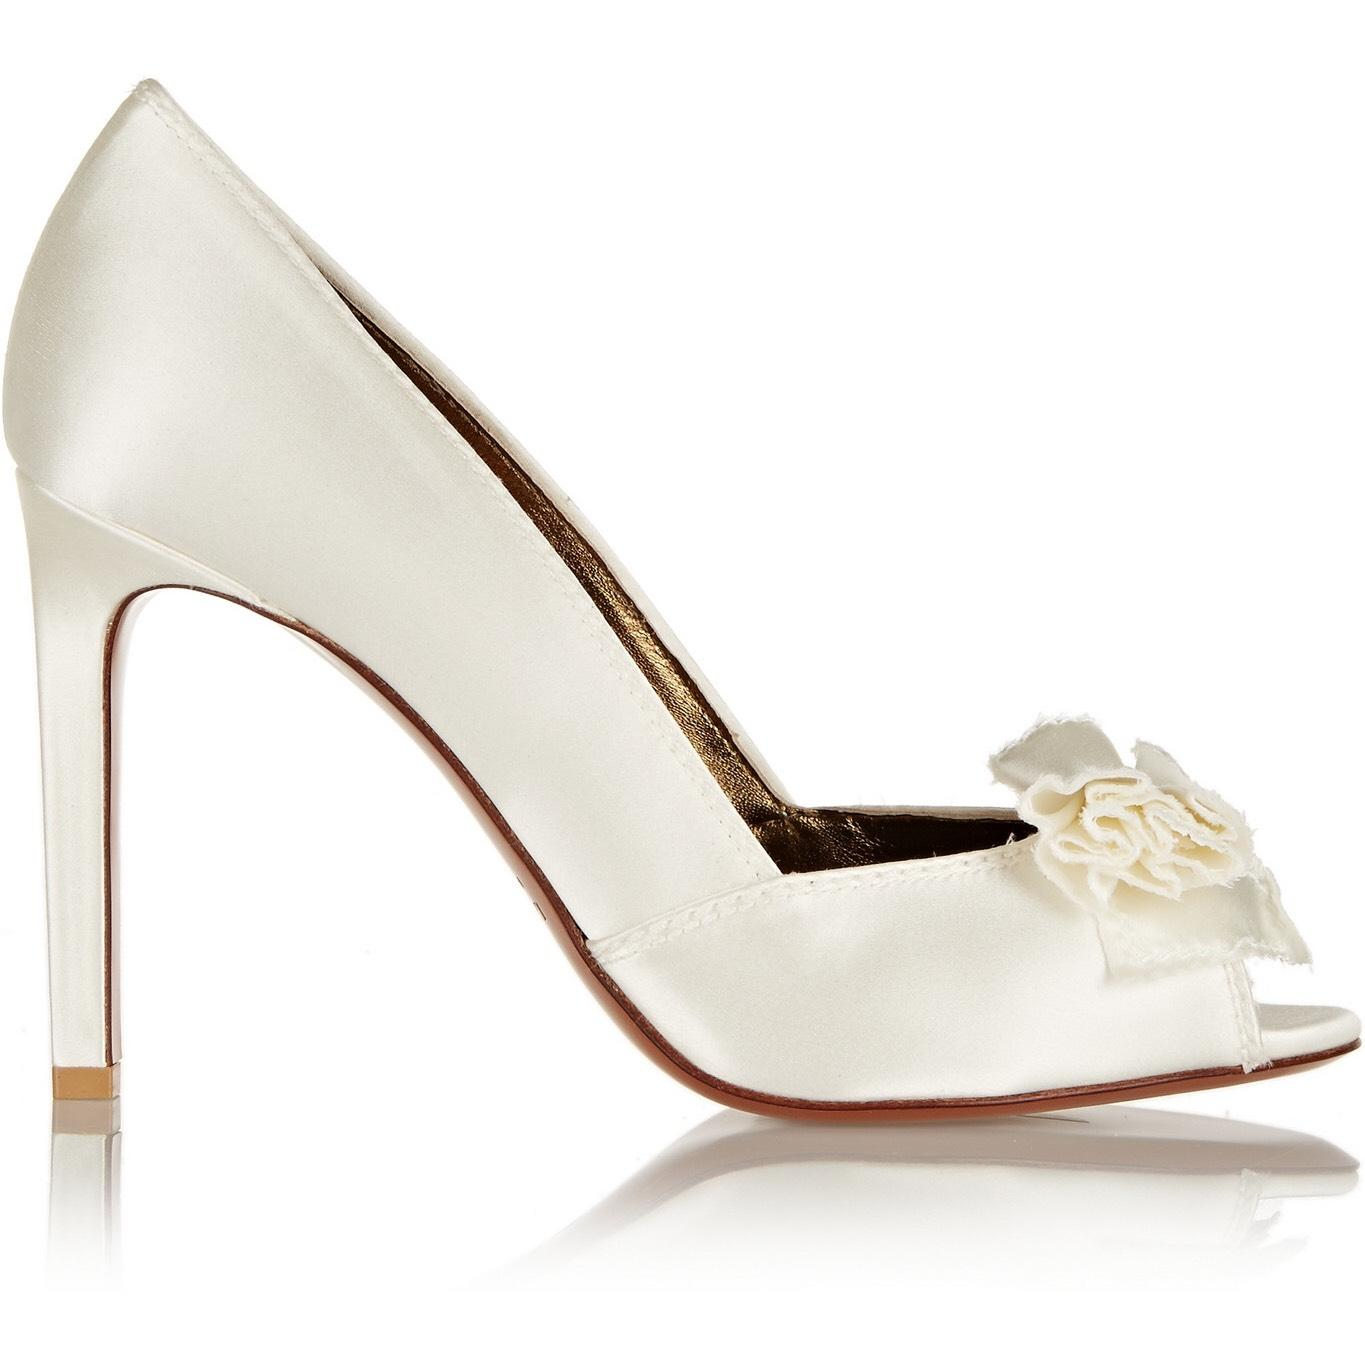 discount the cheapest buy cheap enjoy Lanvin Satin Bow Pumps cheap authentic outlet cheap pictures cheap really SU7lqTXR